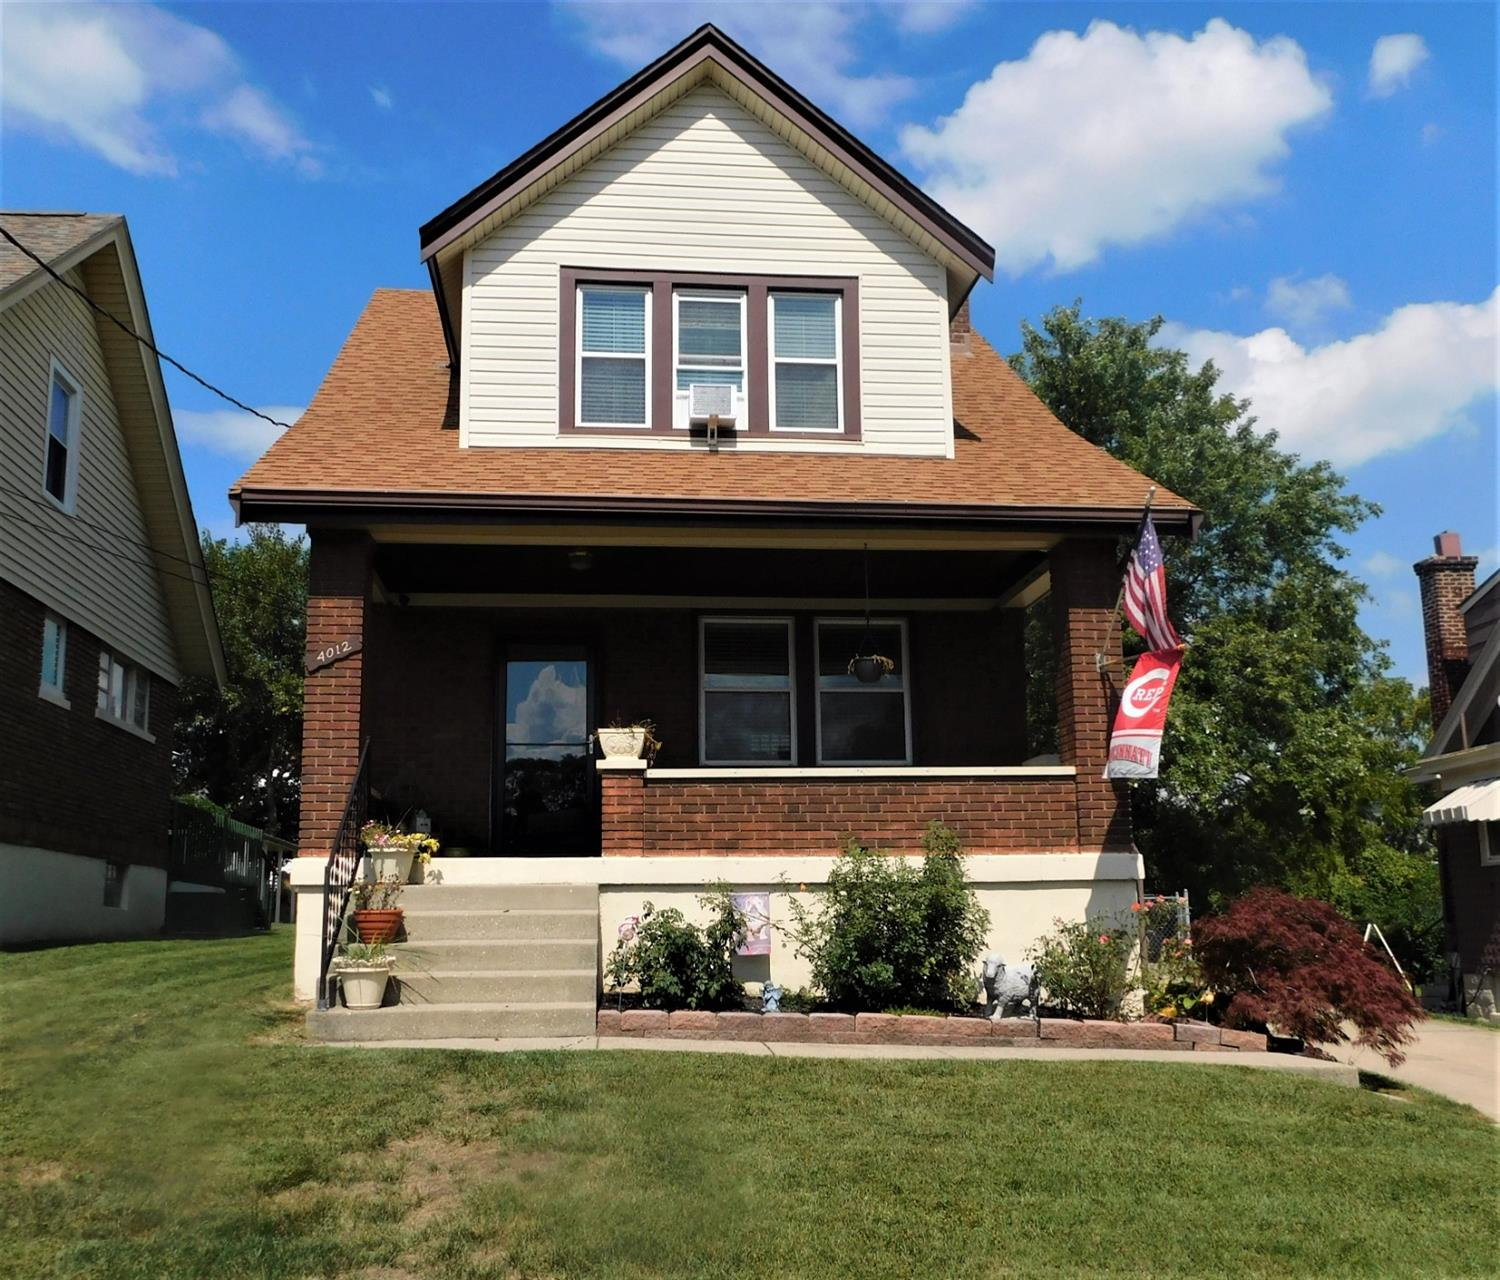 4012 St Martins Place, Cheviot, Ohio 45211, 3 Bedrooms Bedrooms, 6 Rooms Rooms,1 BathroomBathrooms,Single Family Residence,For Sale,St Martins,1716266